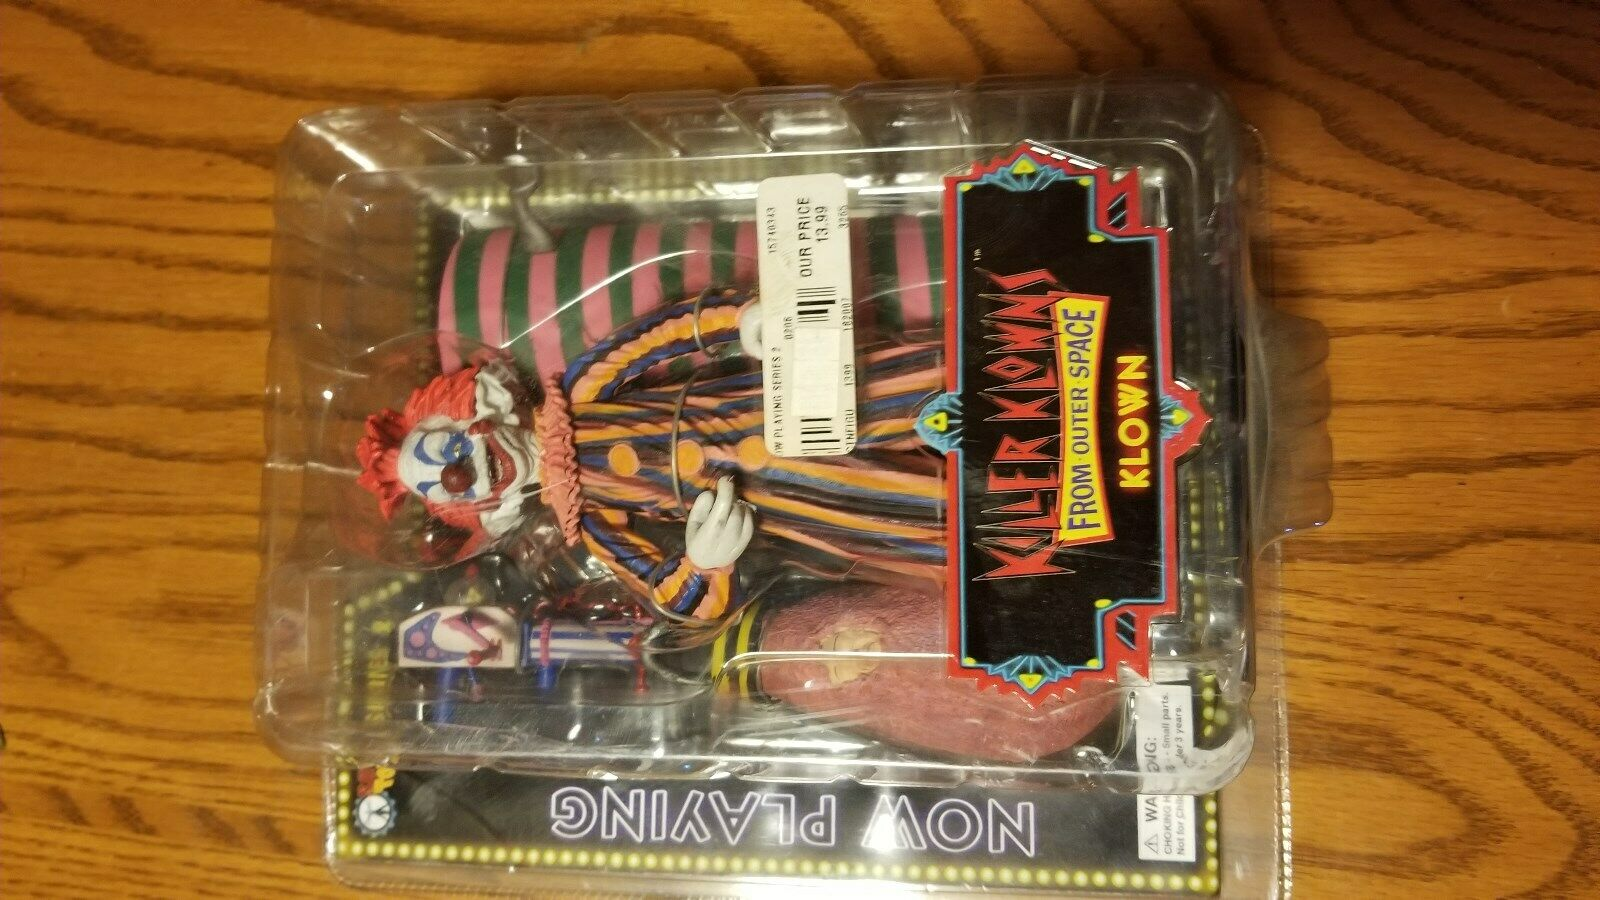 SOTA TOYS KILLER KLOWNS FROM OUTER SPACE ACTION FIGURES Series 2 NOS